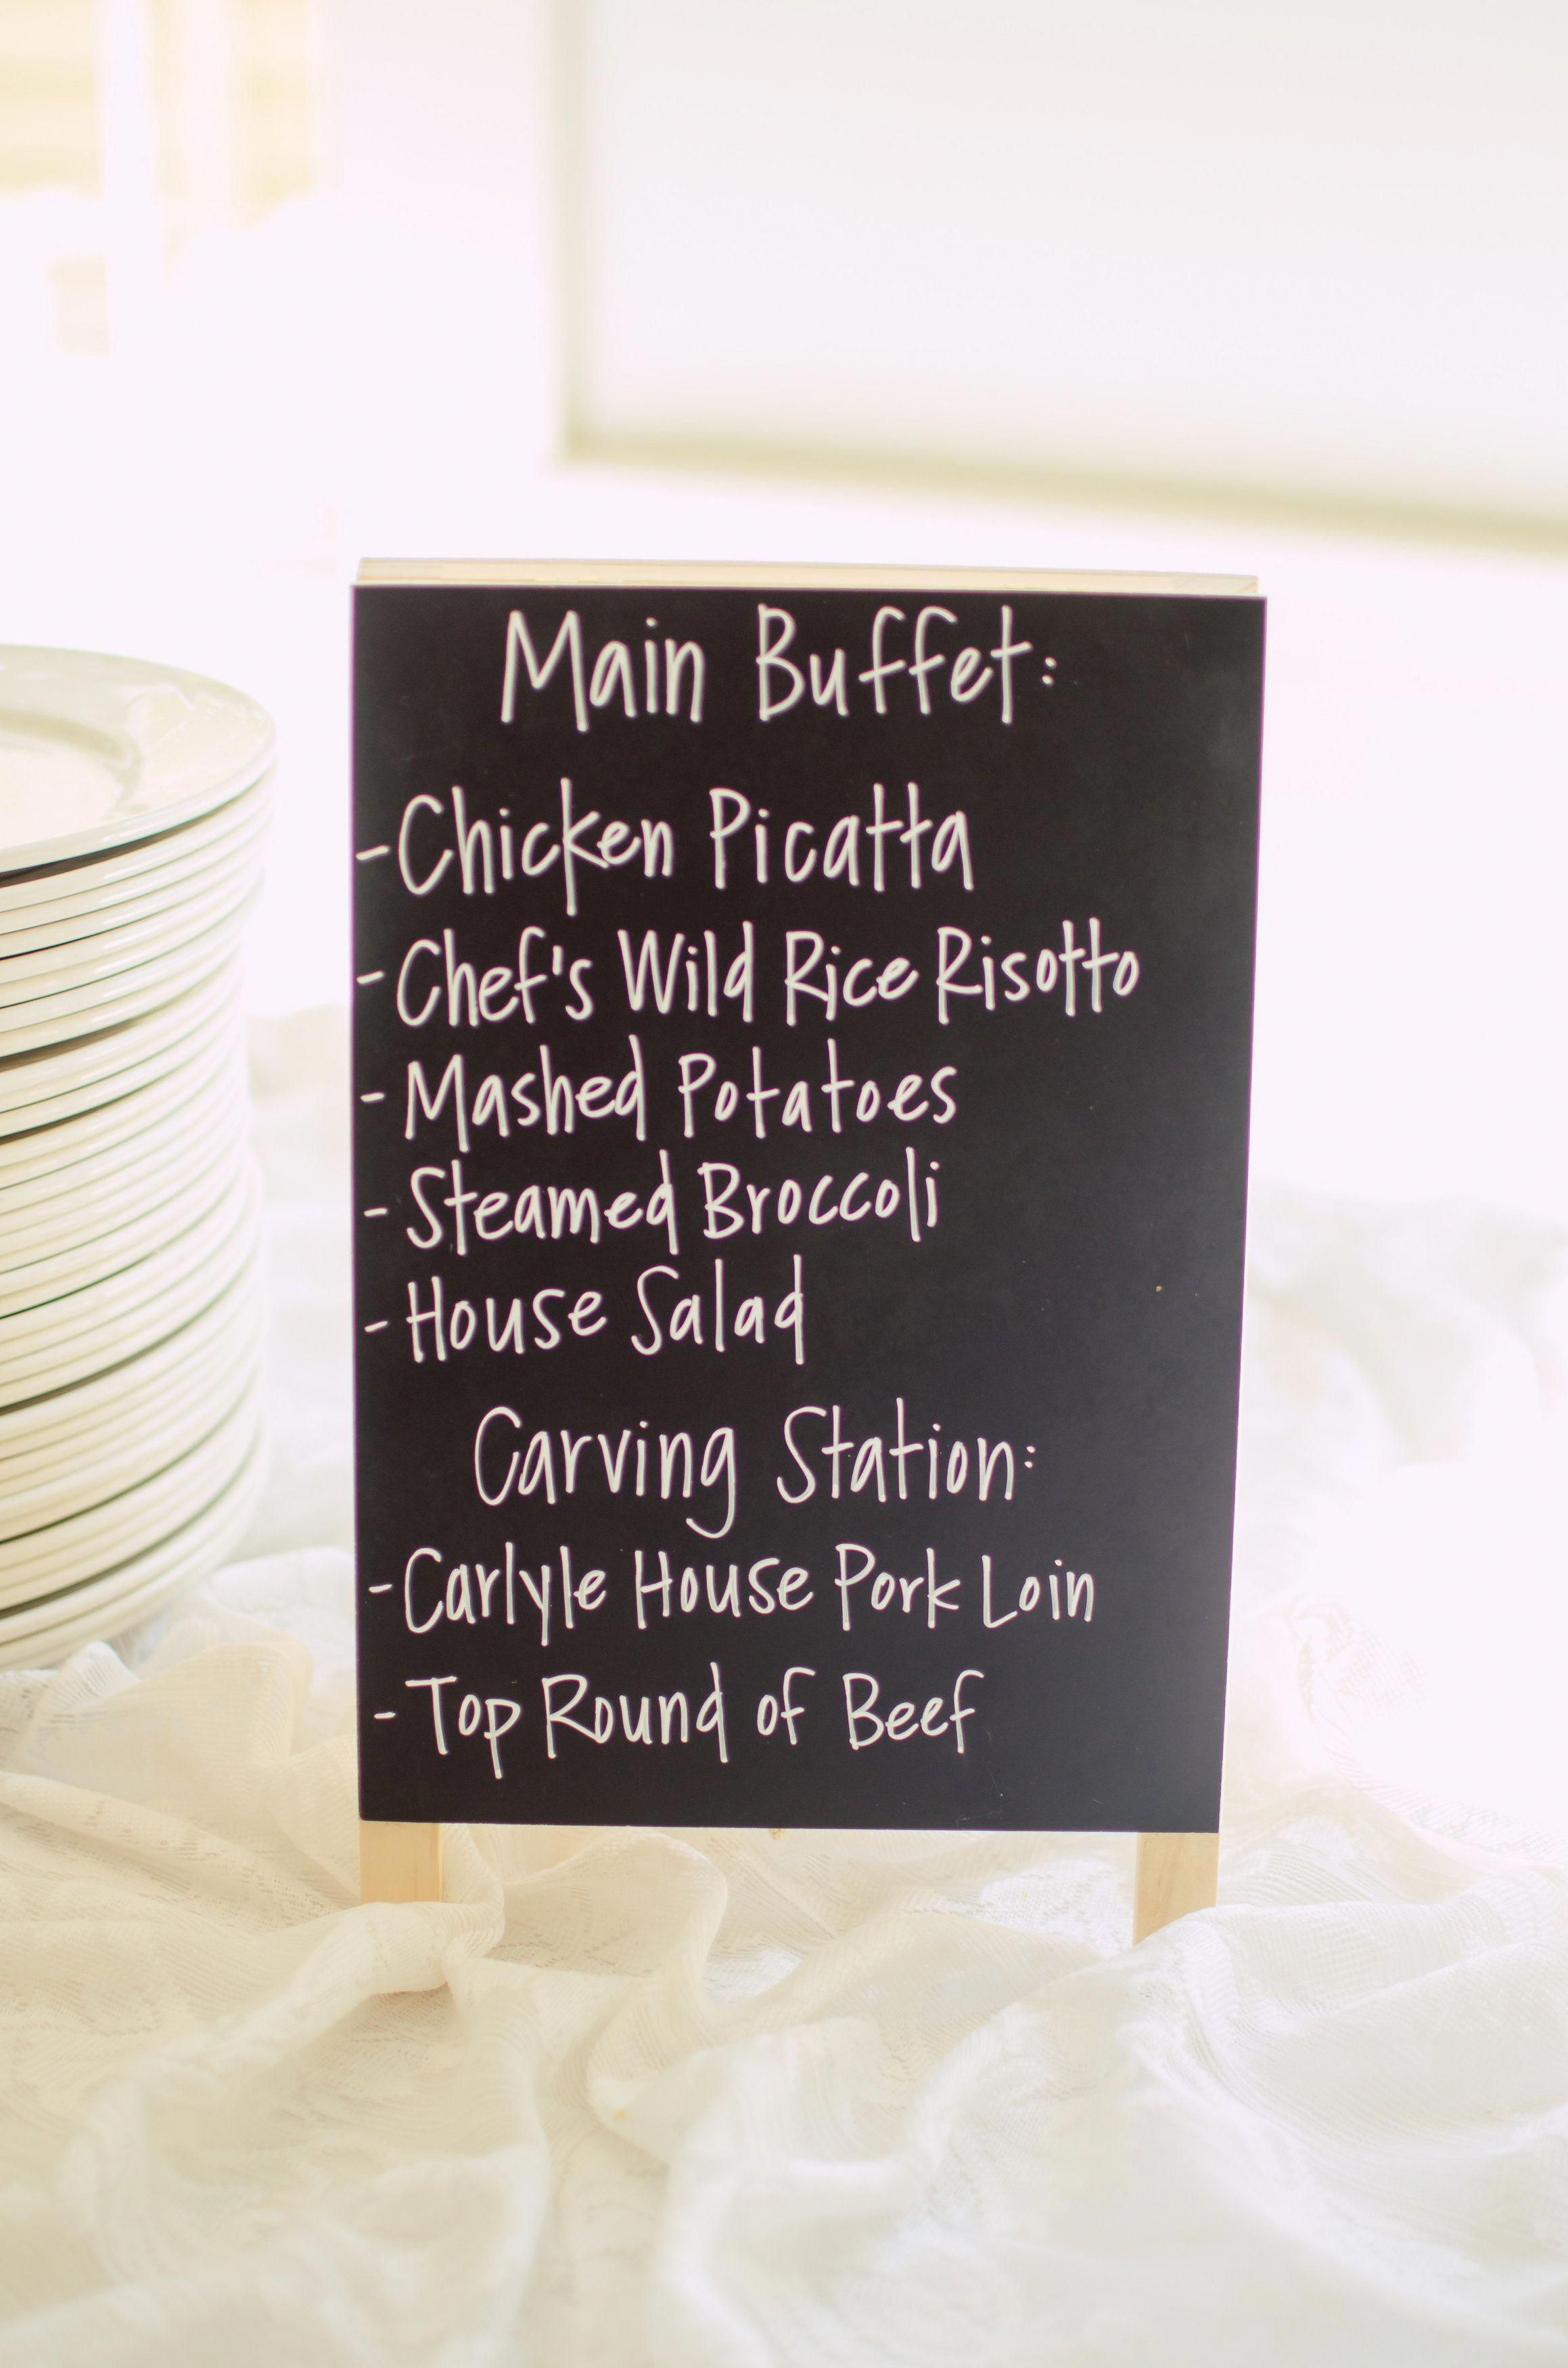 unique wedding catering ideas with images  wedding